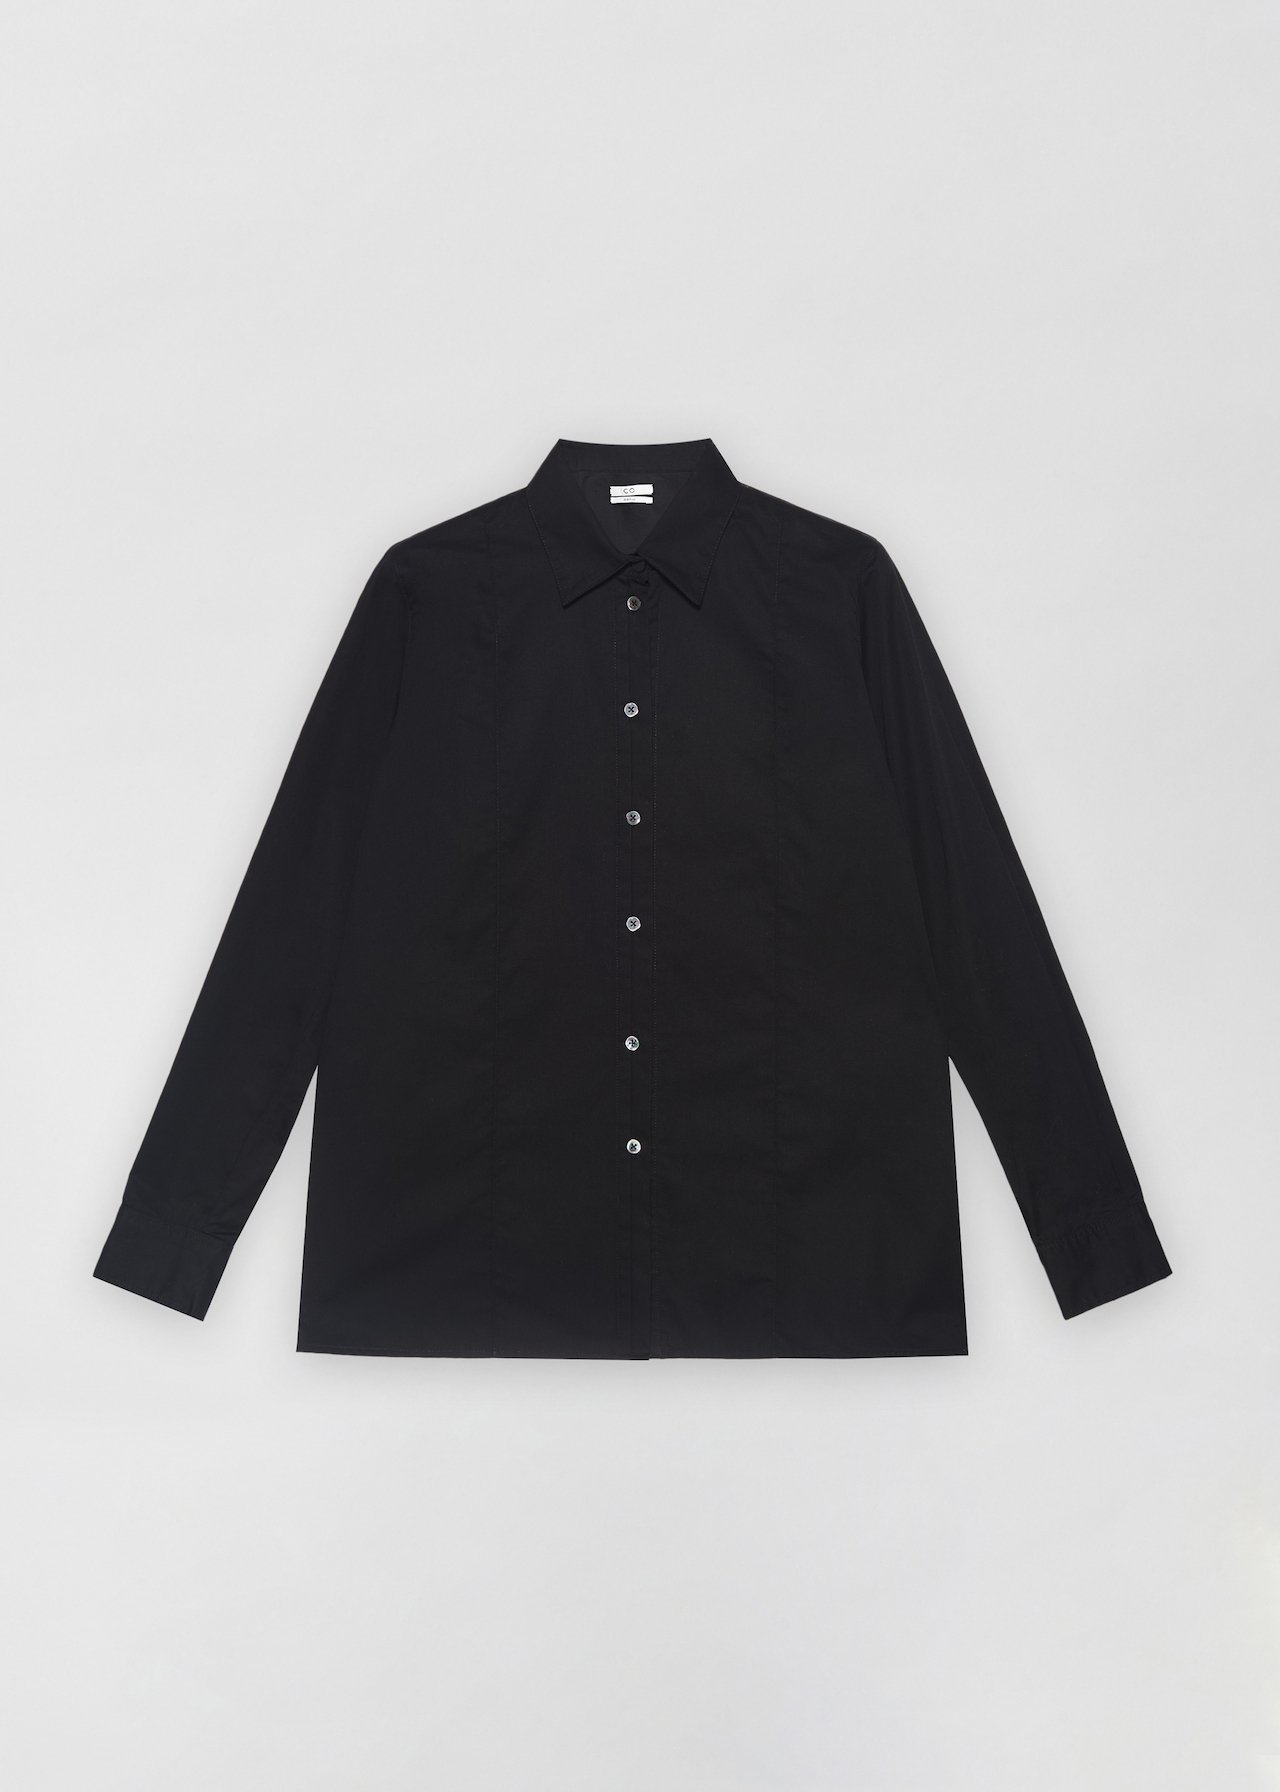 Tucked Placket Button Down Shirt - Black - Co Collections